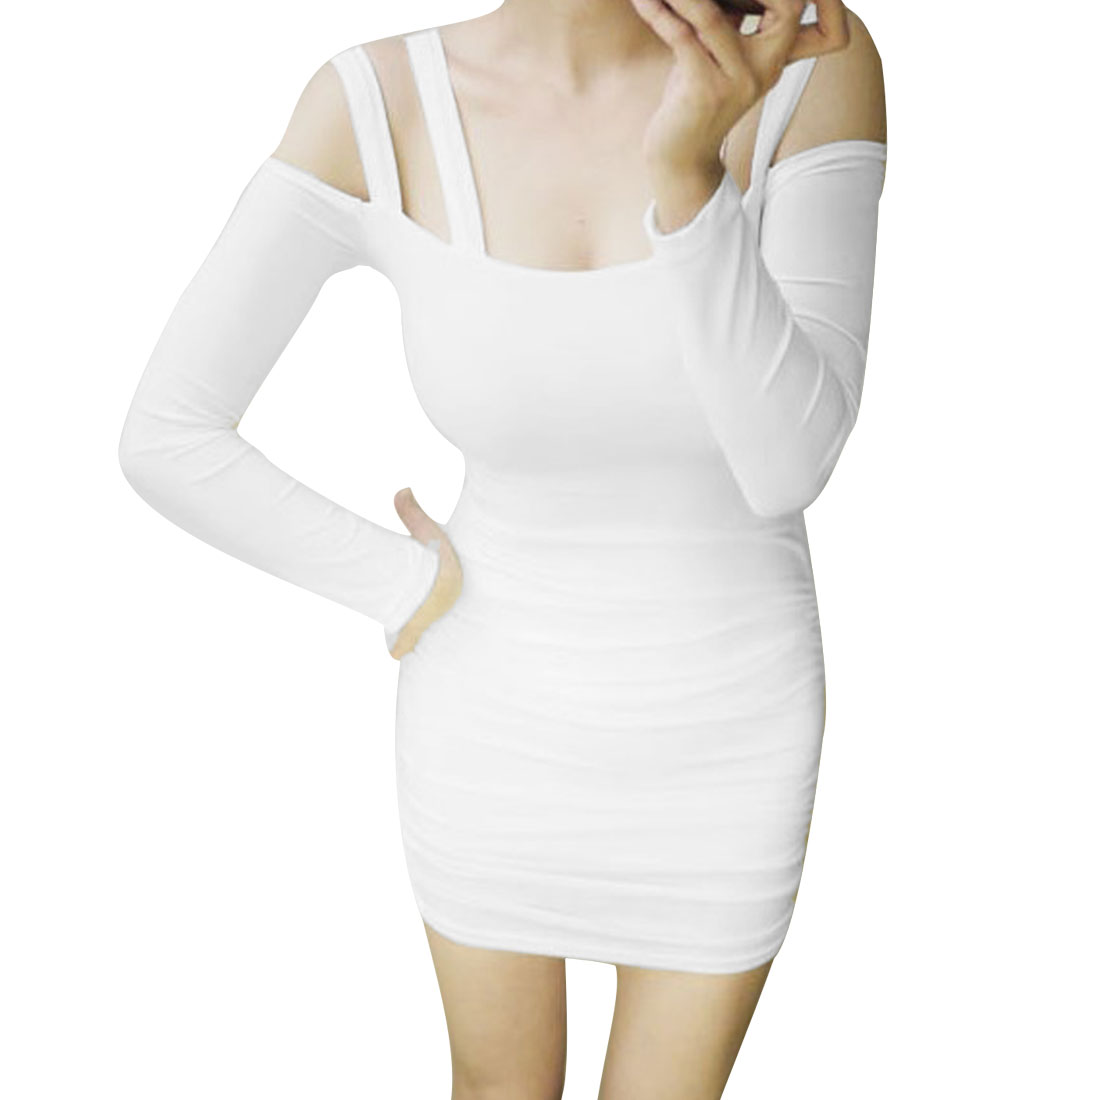 Lady Slim Double Shoulder Strap Long Sleeve Backless White Dress XS